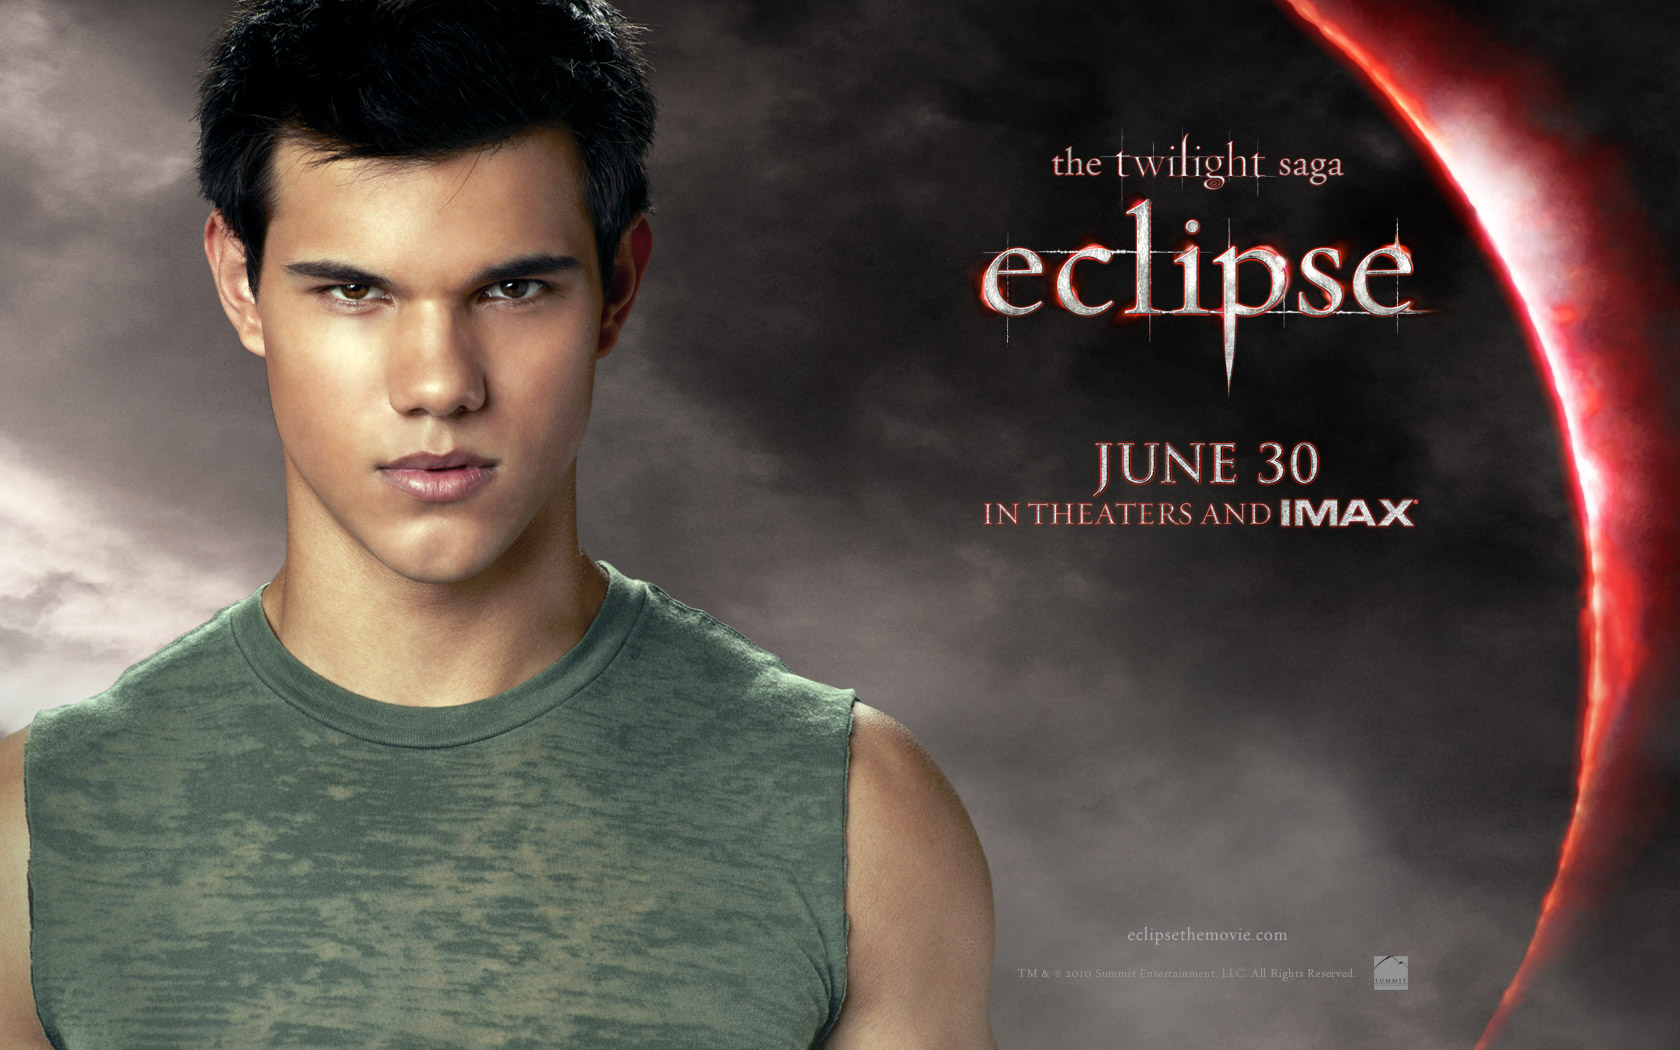 1680x1050 Jacob from Twilight Eclipse Desktop Wallpaper